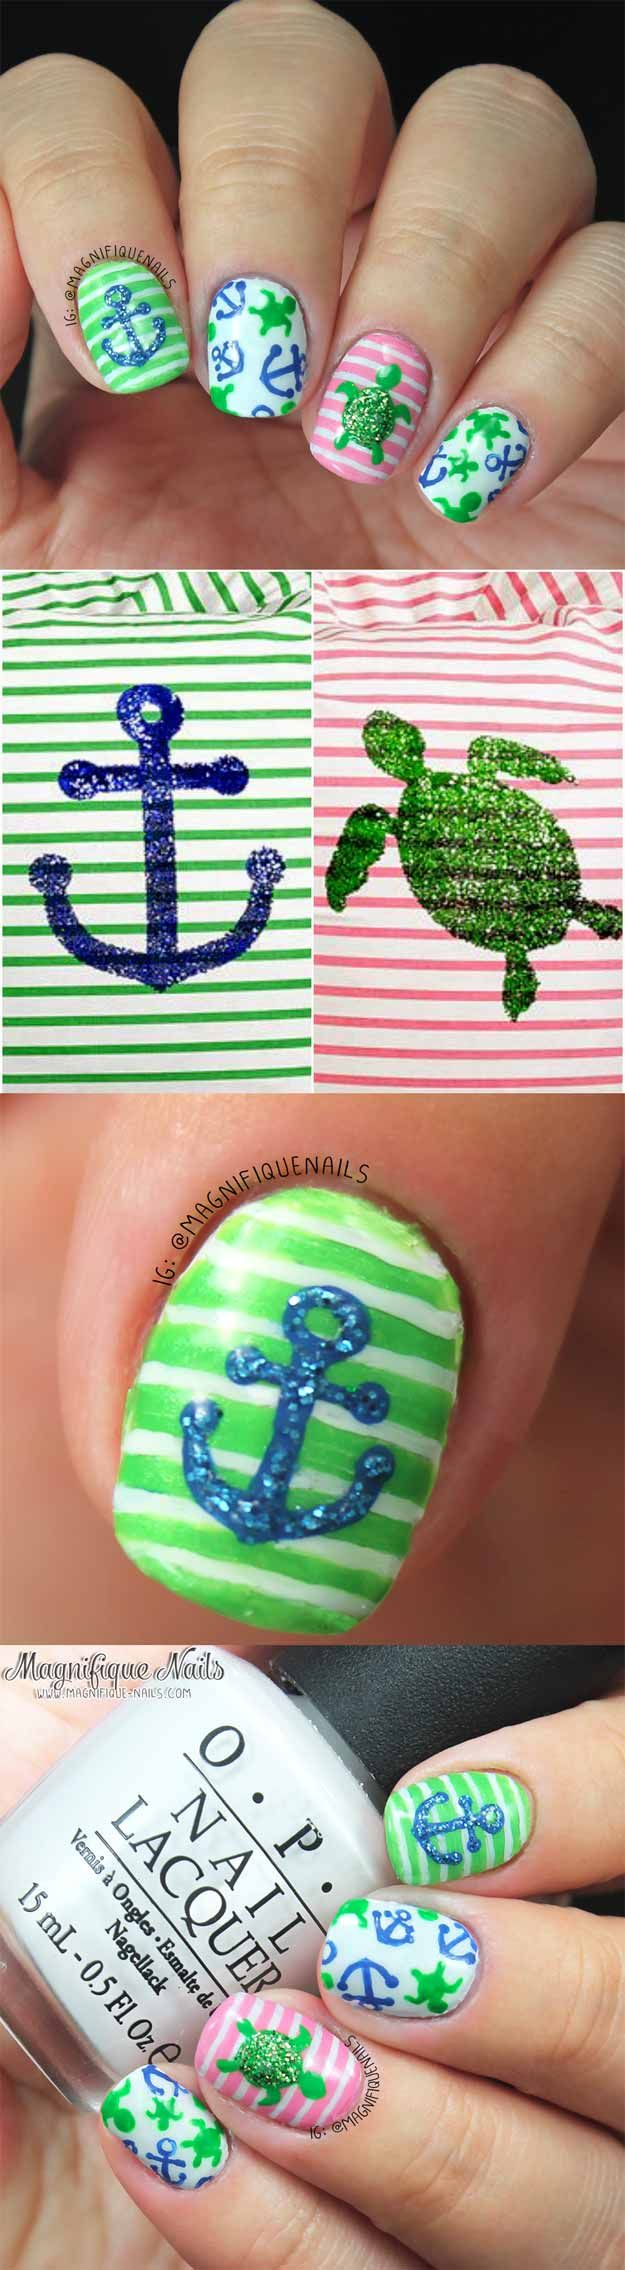 Nail Art Designs For Your Beach Vacation - Summertime Nails - Give Yourself an Awesome New Style With One of These Manicures - Nailart with Palm Trees, Polka Dots, Sea Turtles and Designs For Just the Ring Finger - Blue China Glaze Designs and Toe Nail Art and Simple Glitter Pedicures - https://thegoddess.com/nail-art-designs-for-the-beach